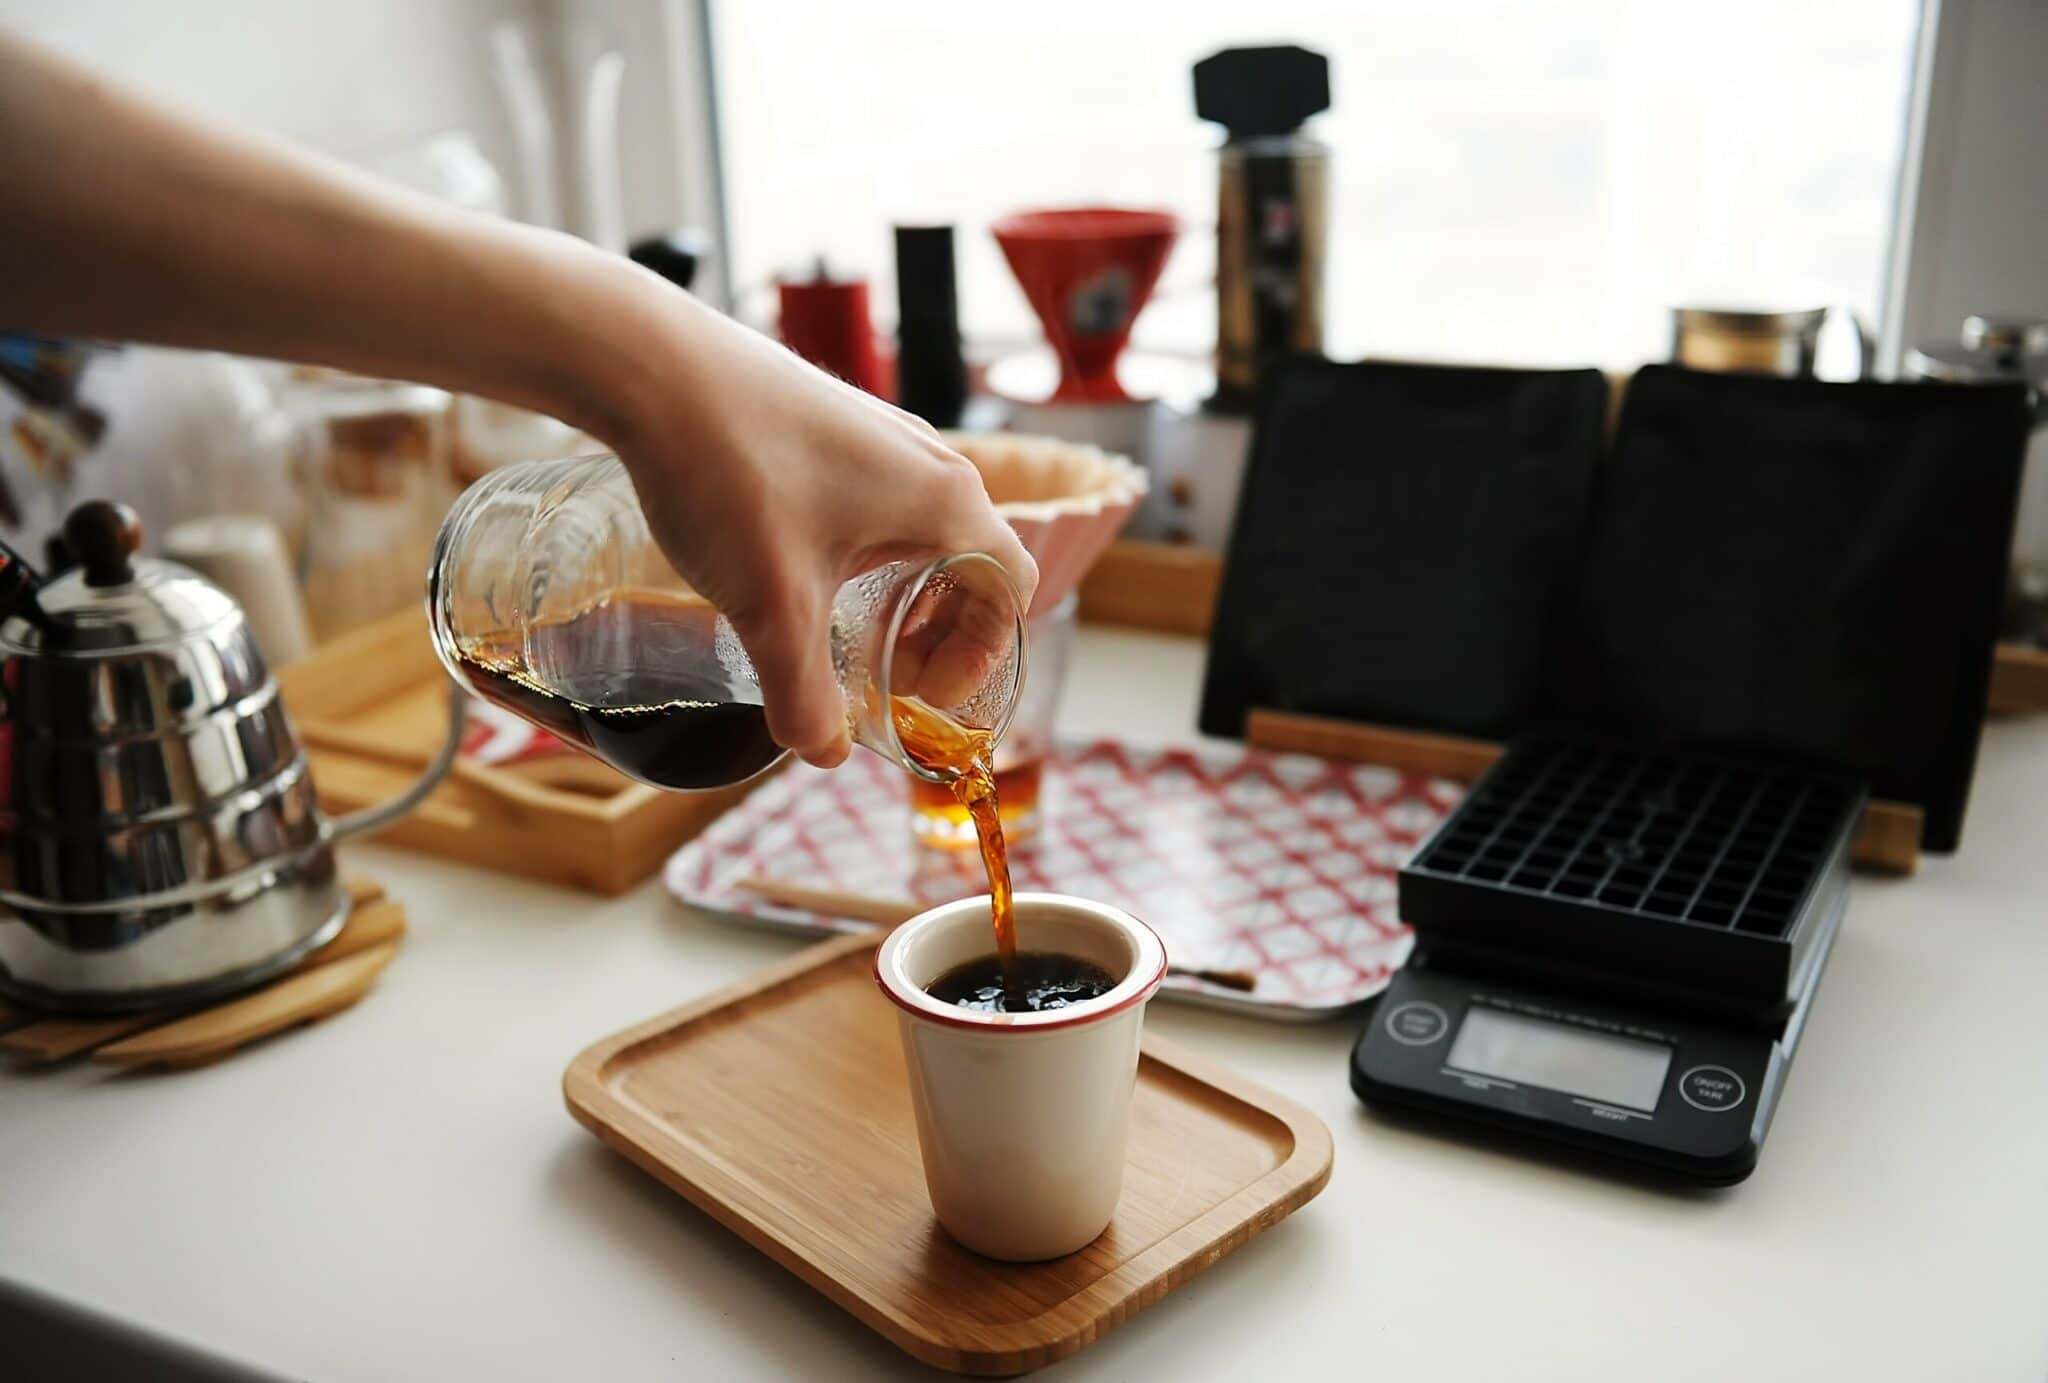 Brewing Coffee at Home: 17 FAQ's to Help Make your Best Cup